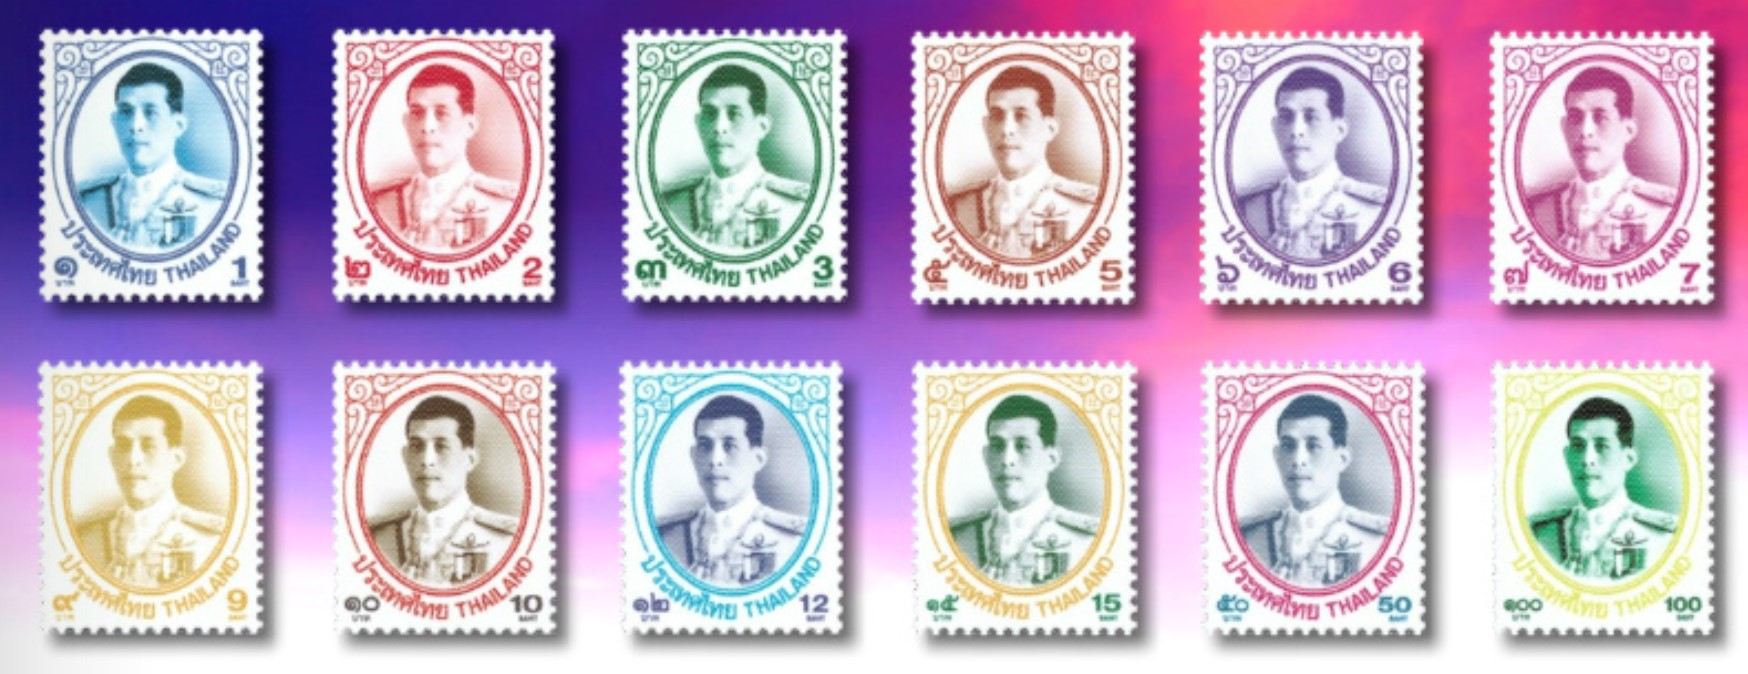 Thailand - 2018-04-06 King Rama X Definitive Series I - 12 stamps in various denominations